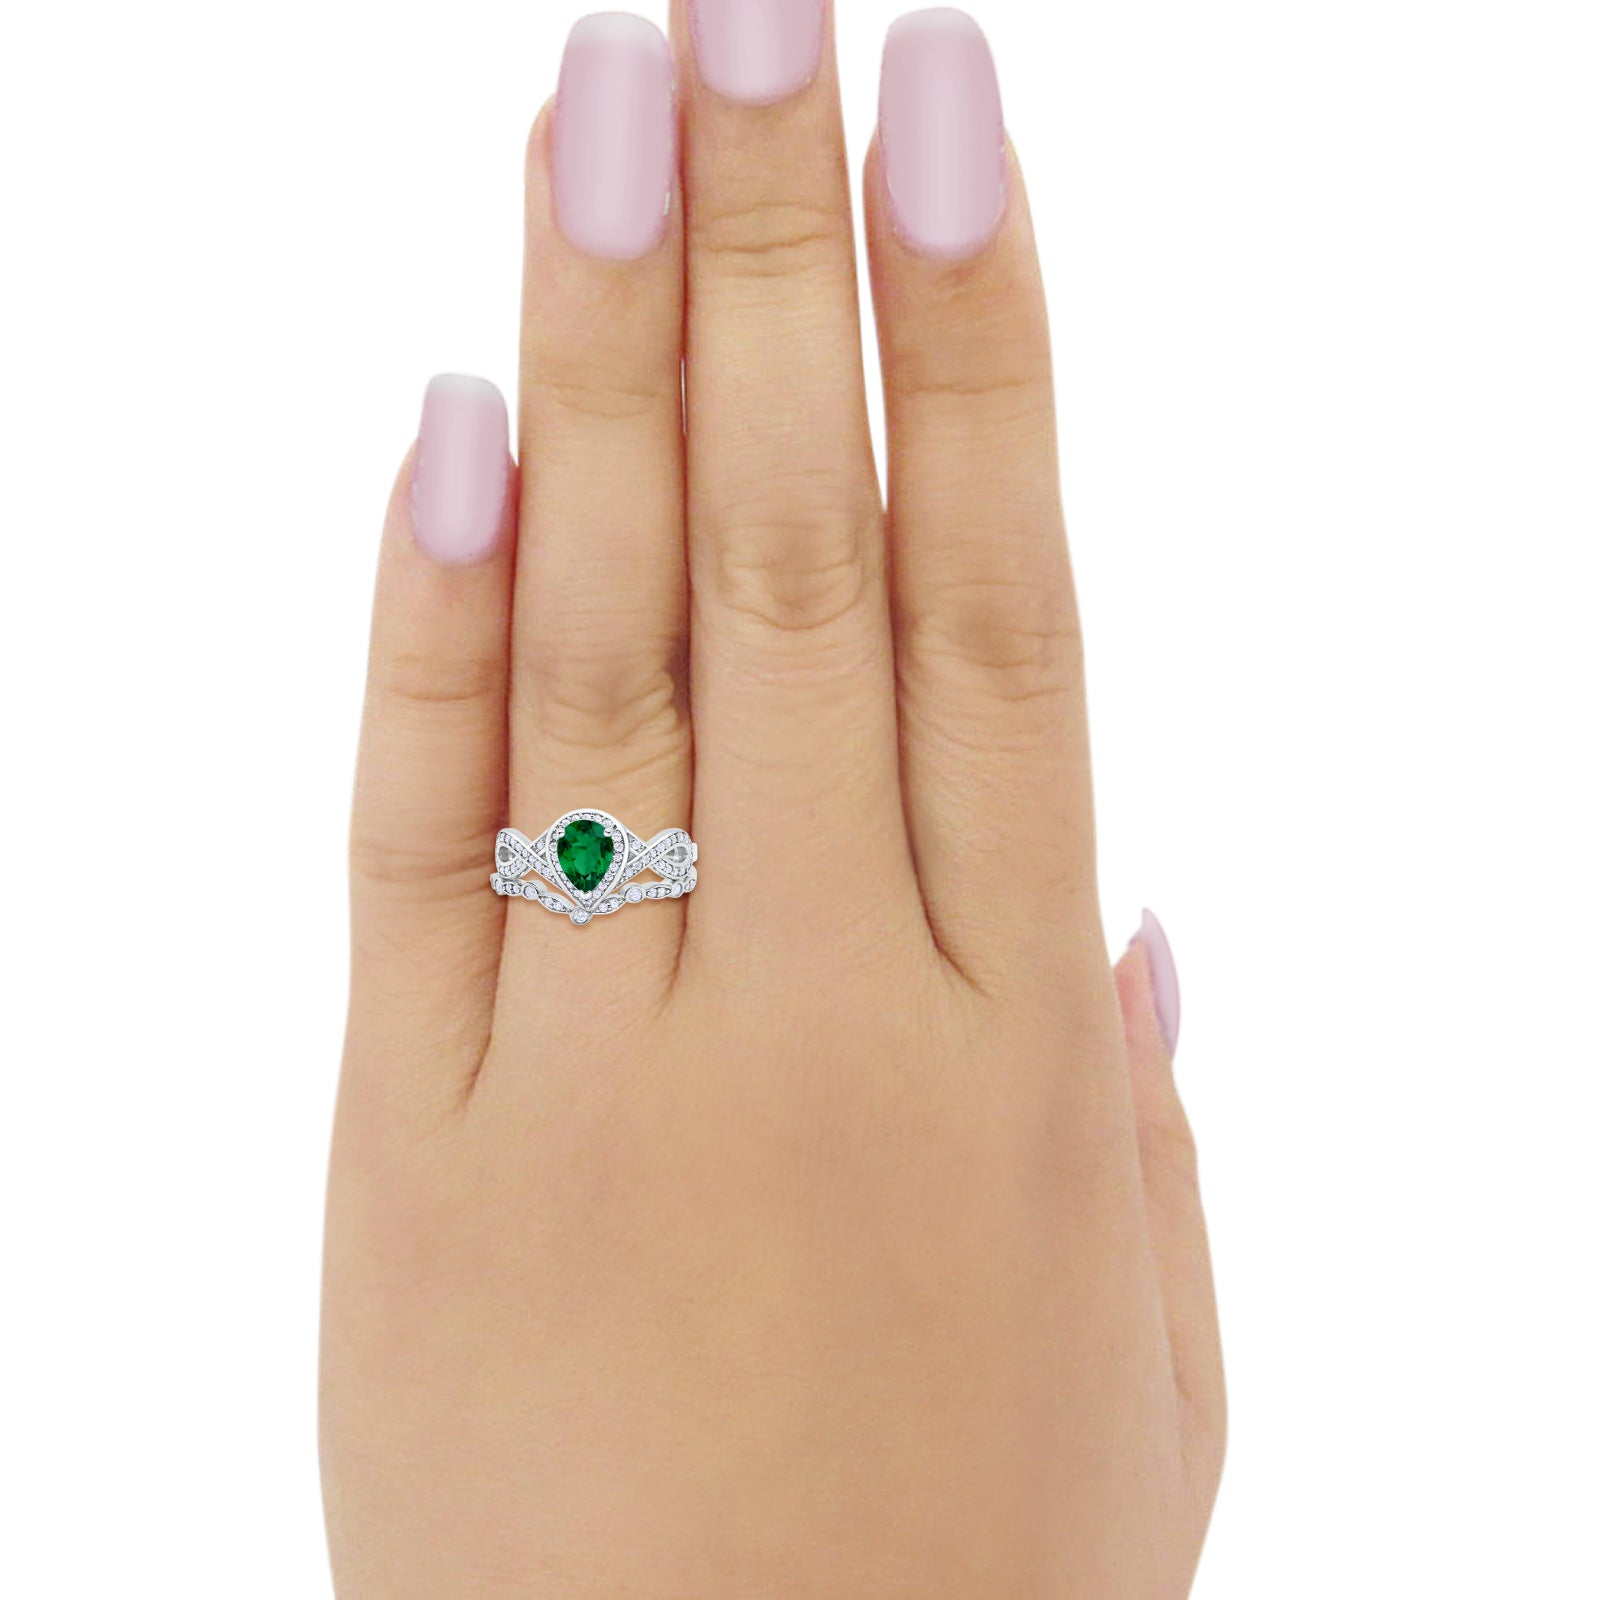 Teardrop Wedding Ring Band Piece Simulated Green Emerald CZ 925 Sterling Silver